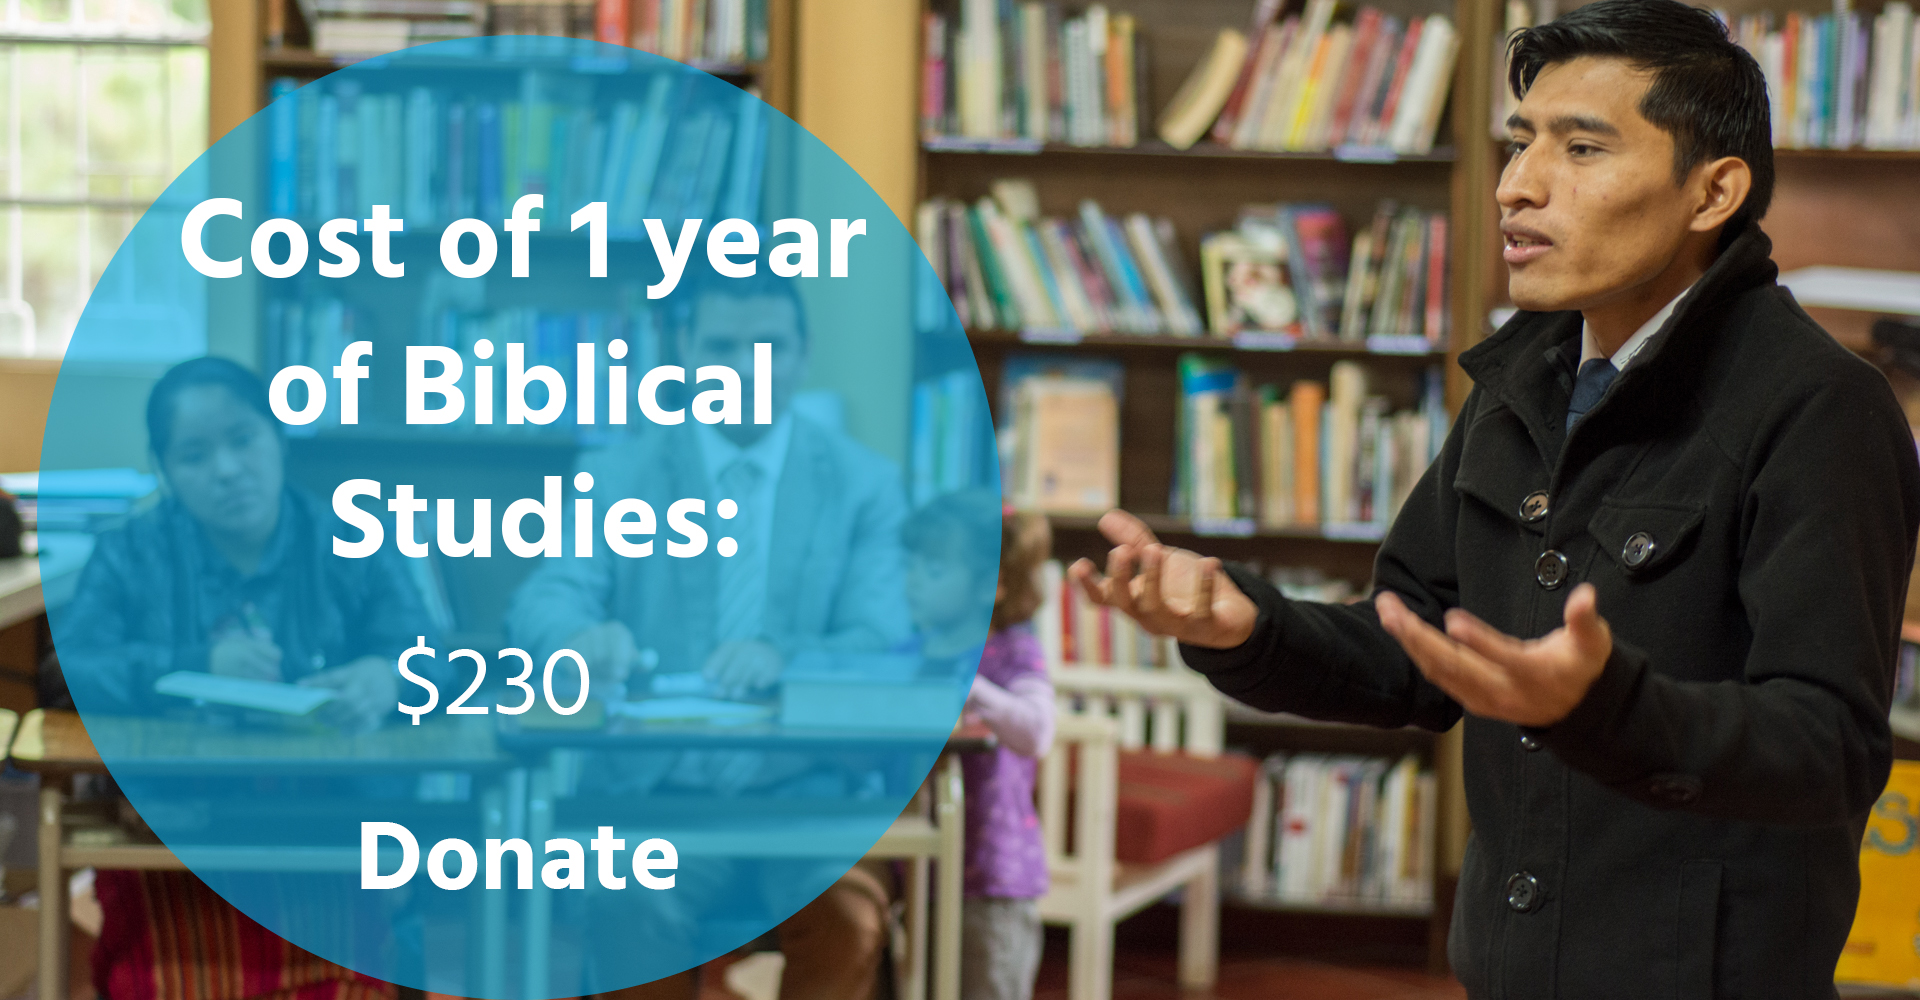 The Cost of One Year of Biblical Studies: $230